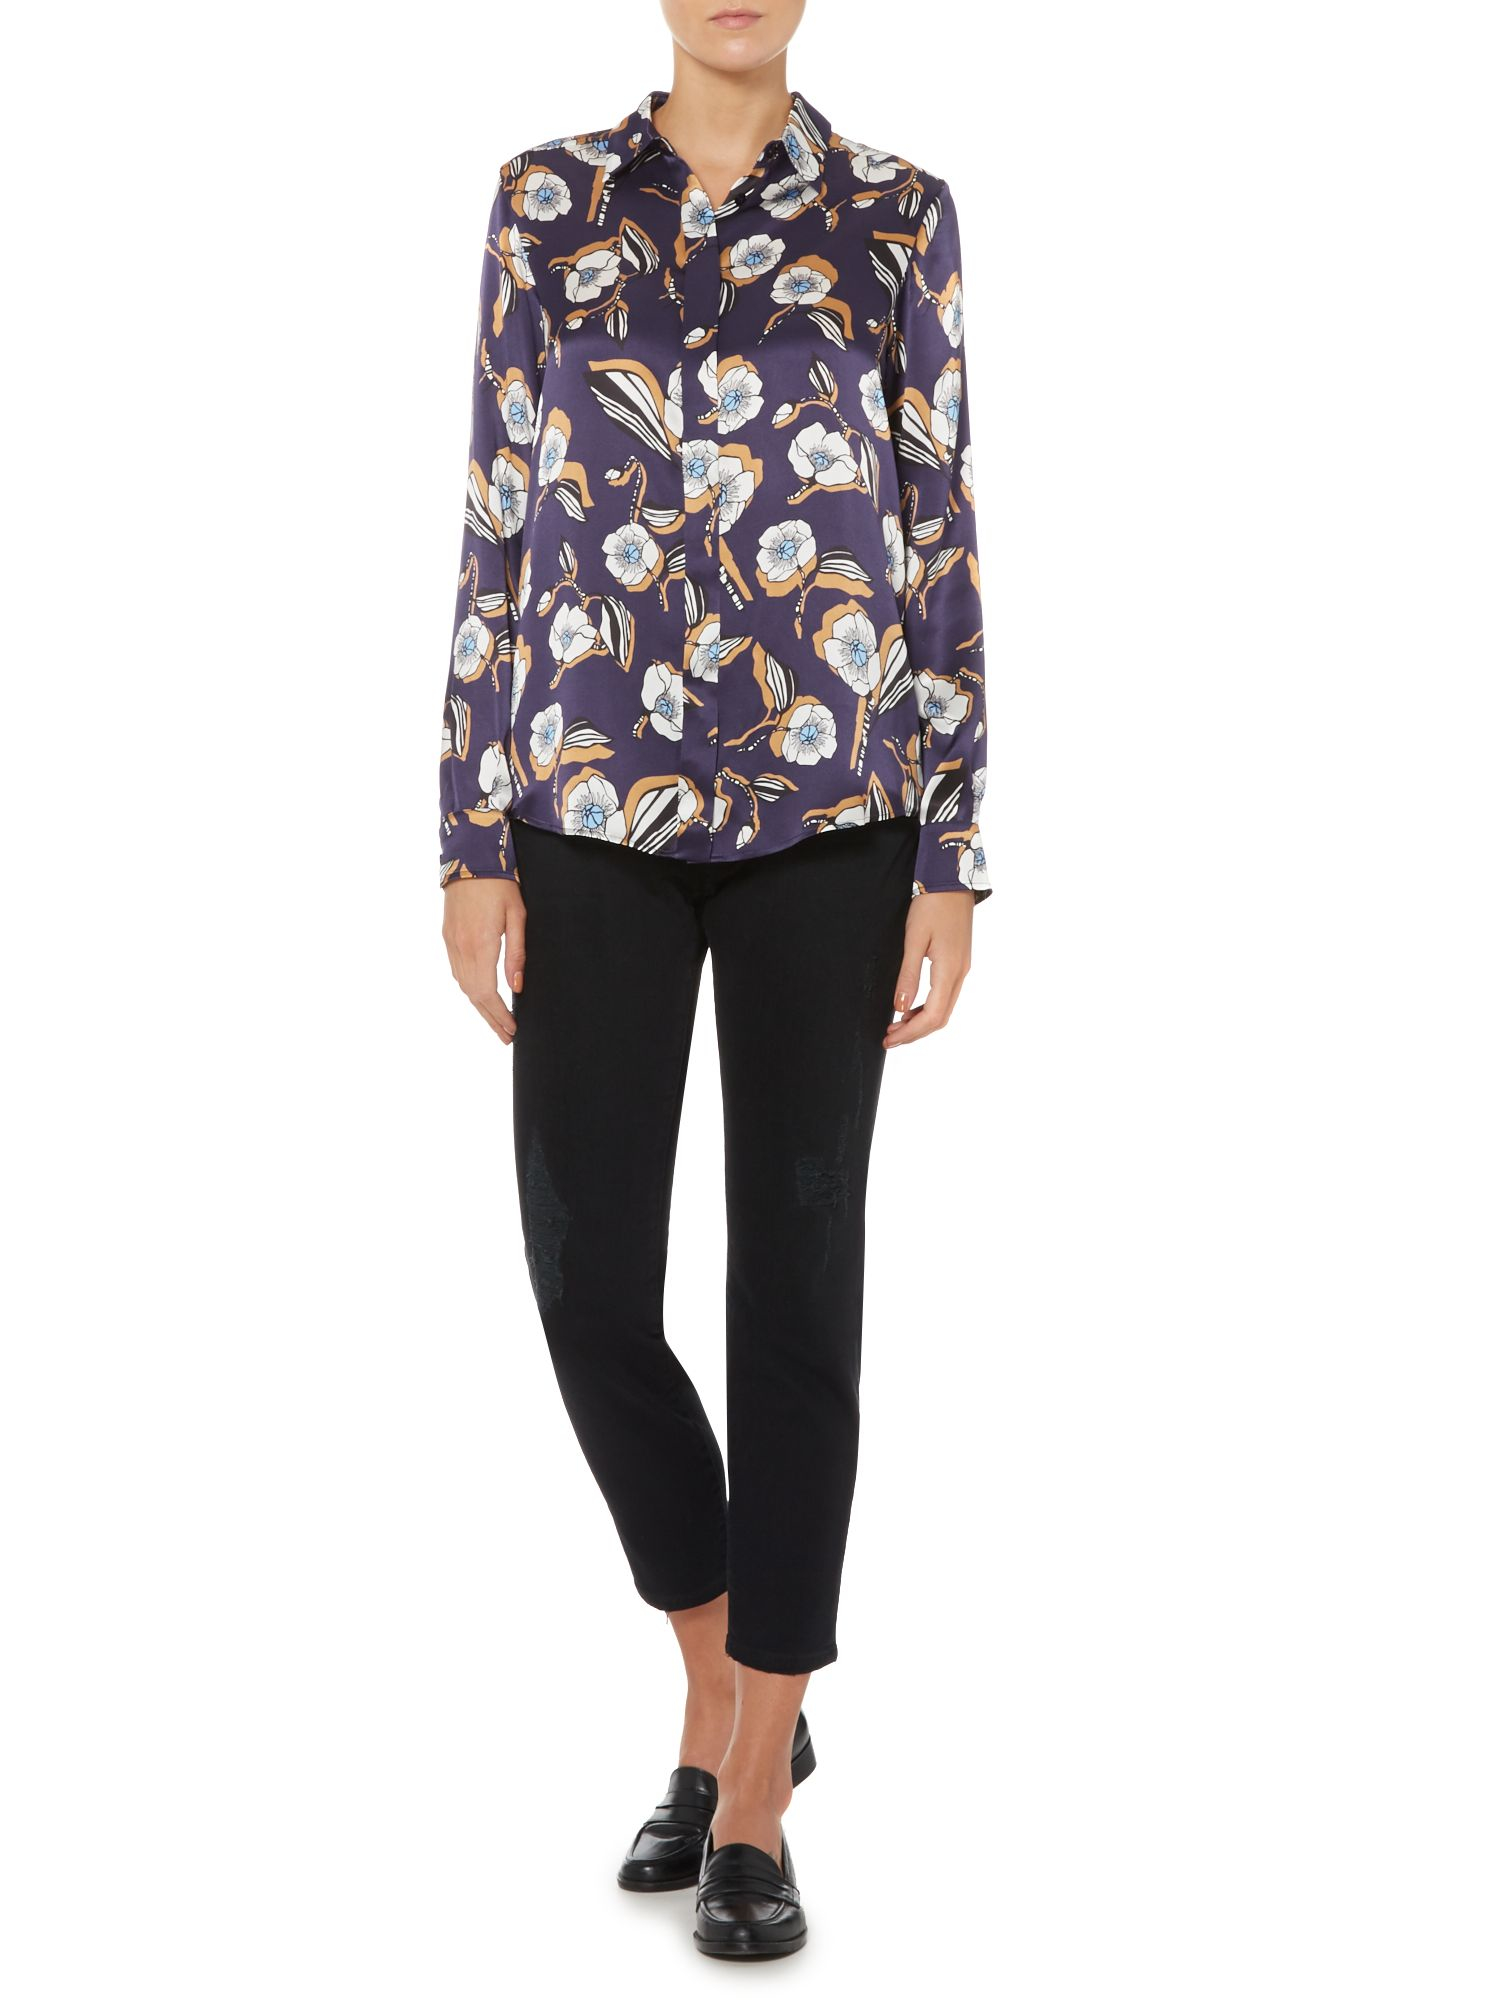 Sportmax code Floral Pattern Silk Shirt in Blue  Lyst